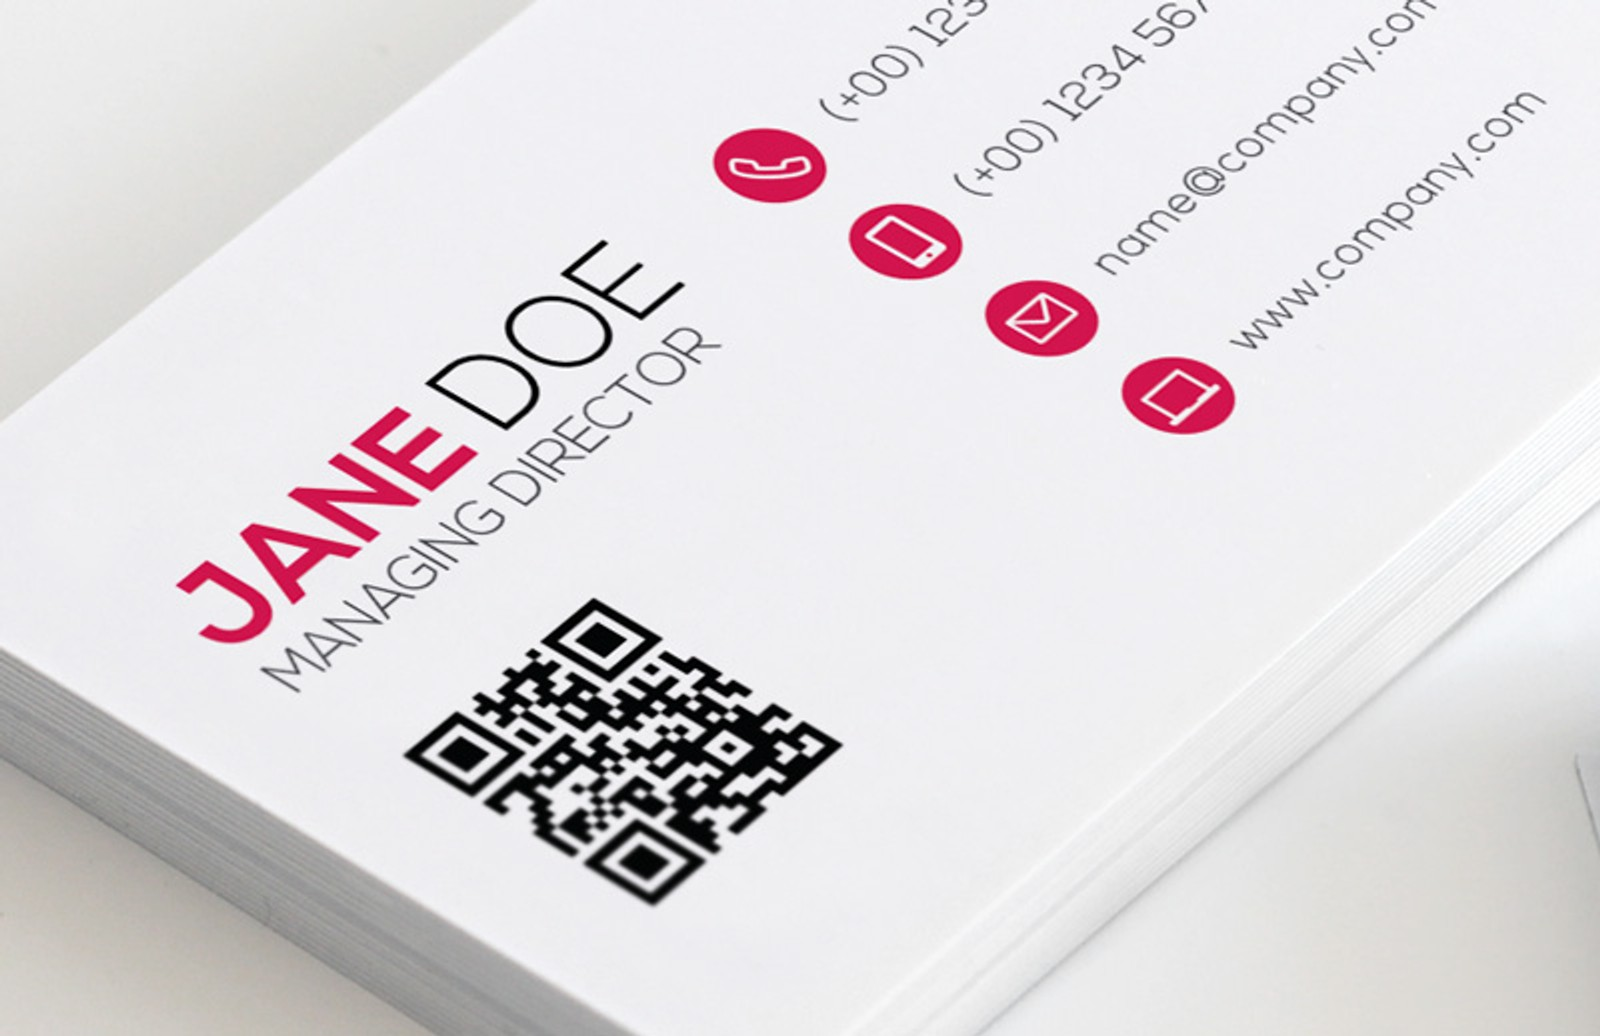 Qr code business card template vol 2 medialoot qr code business card vol 2 preview 1 reheart Images